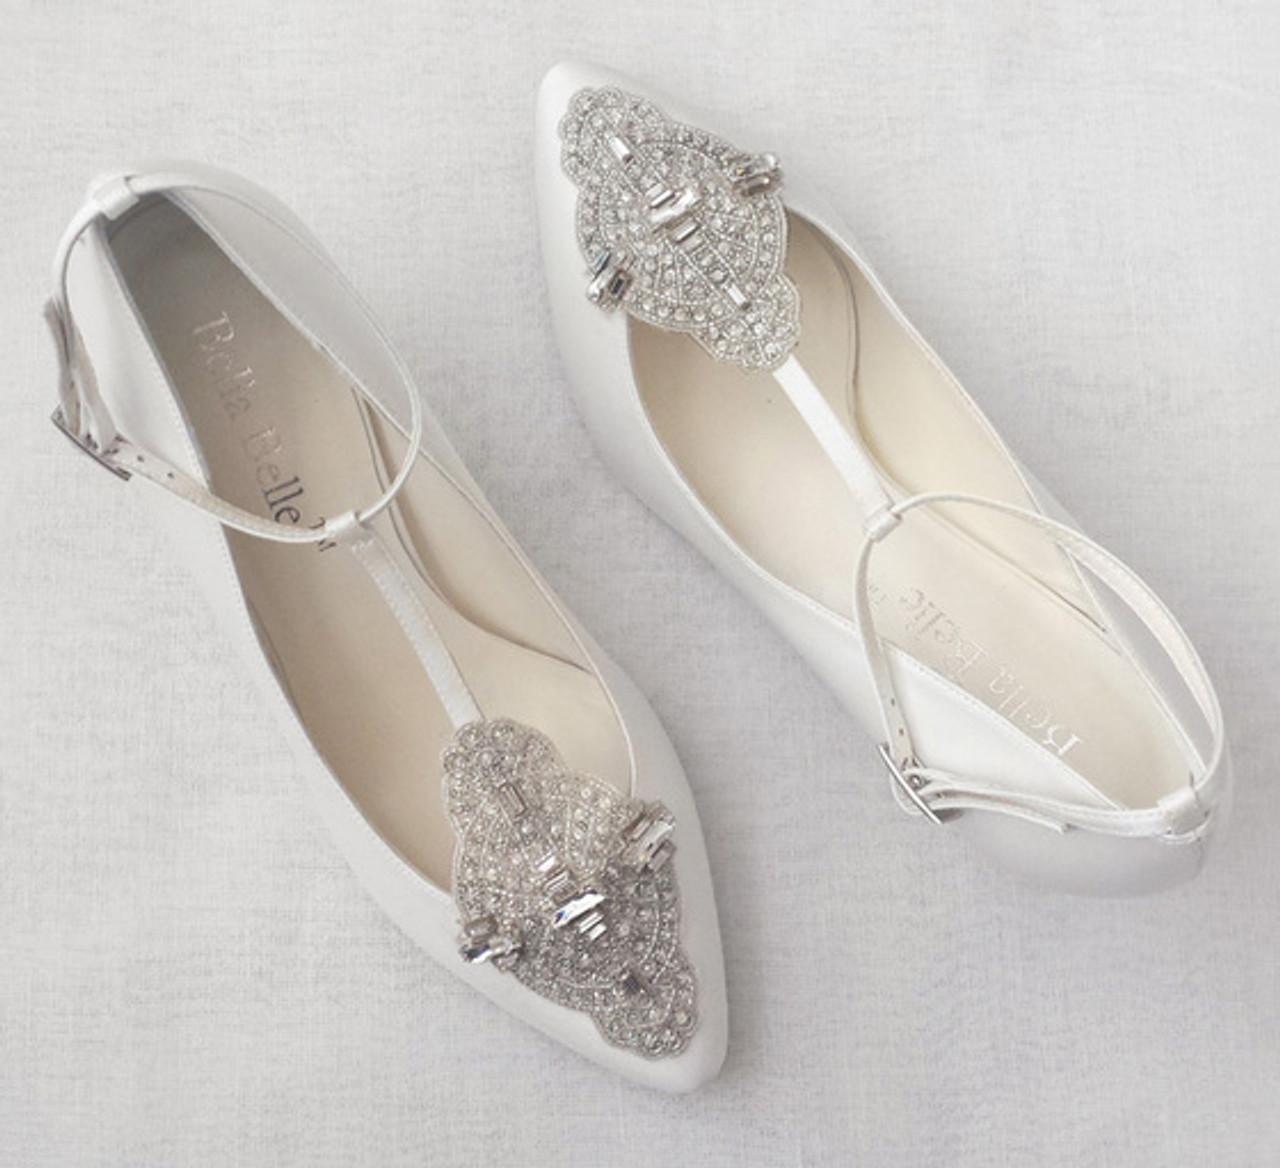 662fec3b8 Annalise Art Deco wedding shoes Inspired by the glamour of the Great Gatsby  era Hand-